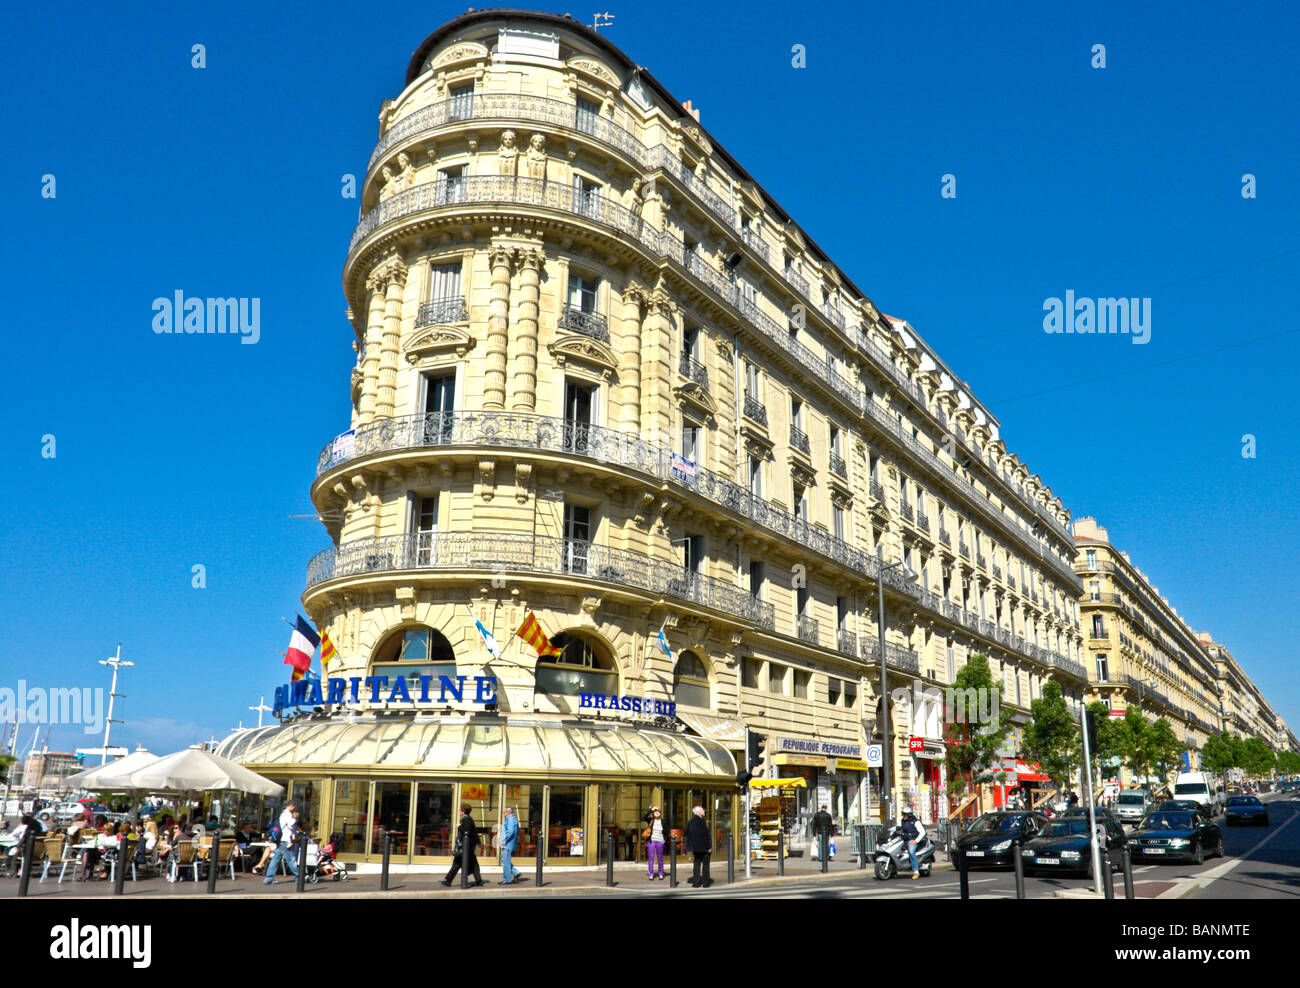 Samaritaine Brasserie at Quay de Port near Vieux Port in harbour area of Marseille France - Stock Image